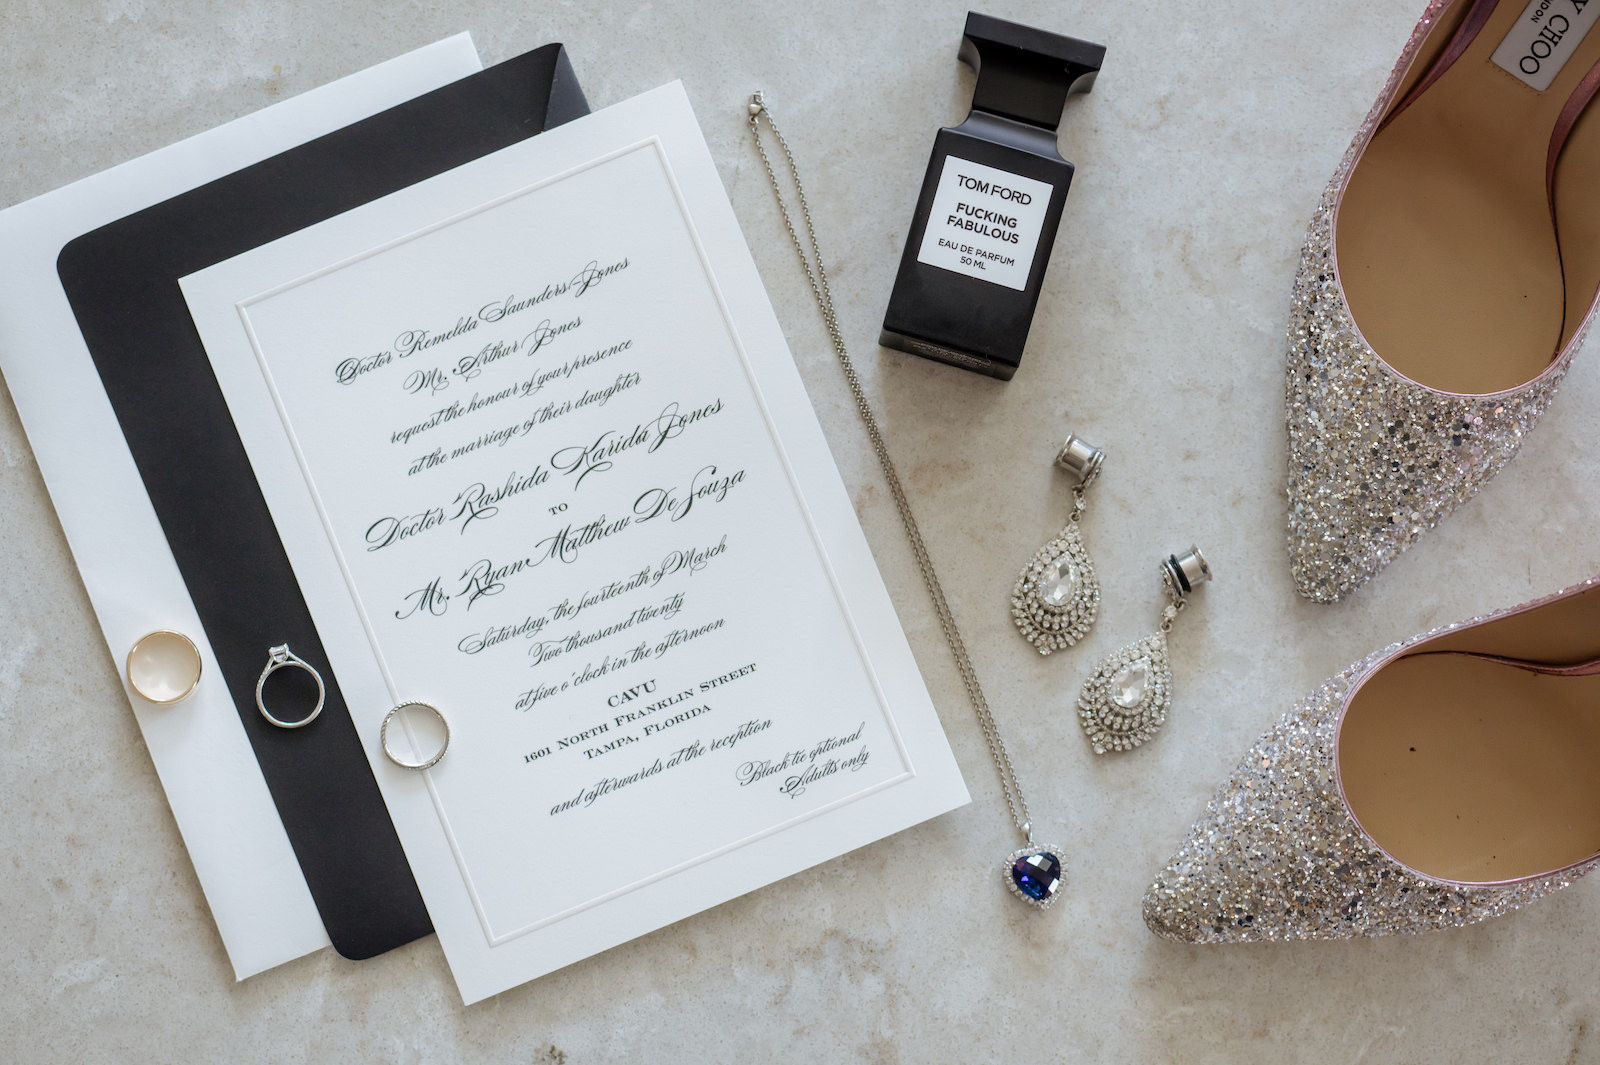 Classic Black and White Wedding Invitation with Calligraphy   Wedding Stationery Flat Lay with Tom Ford Perfume and Glitter Sparkle Jimmy Choo Bride Wedding Shoes